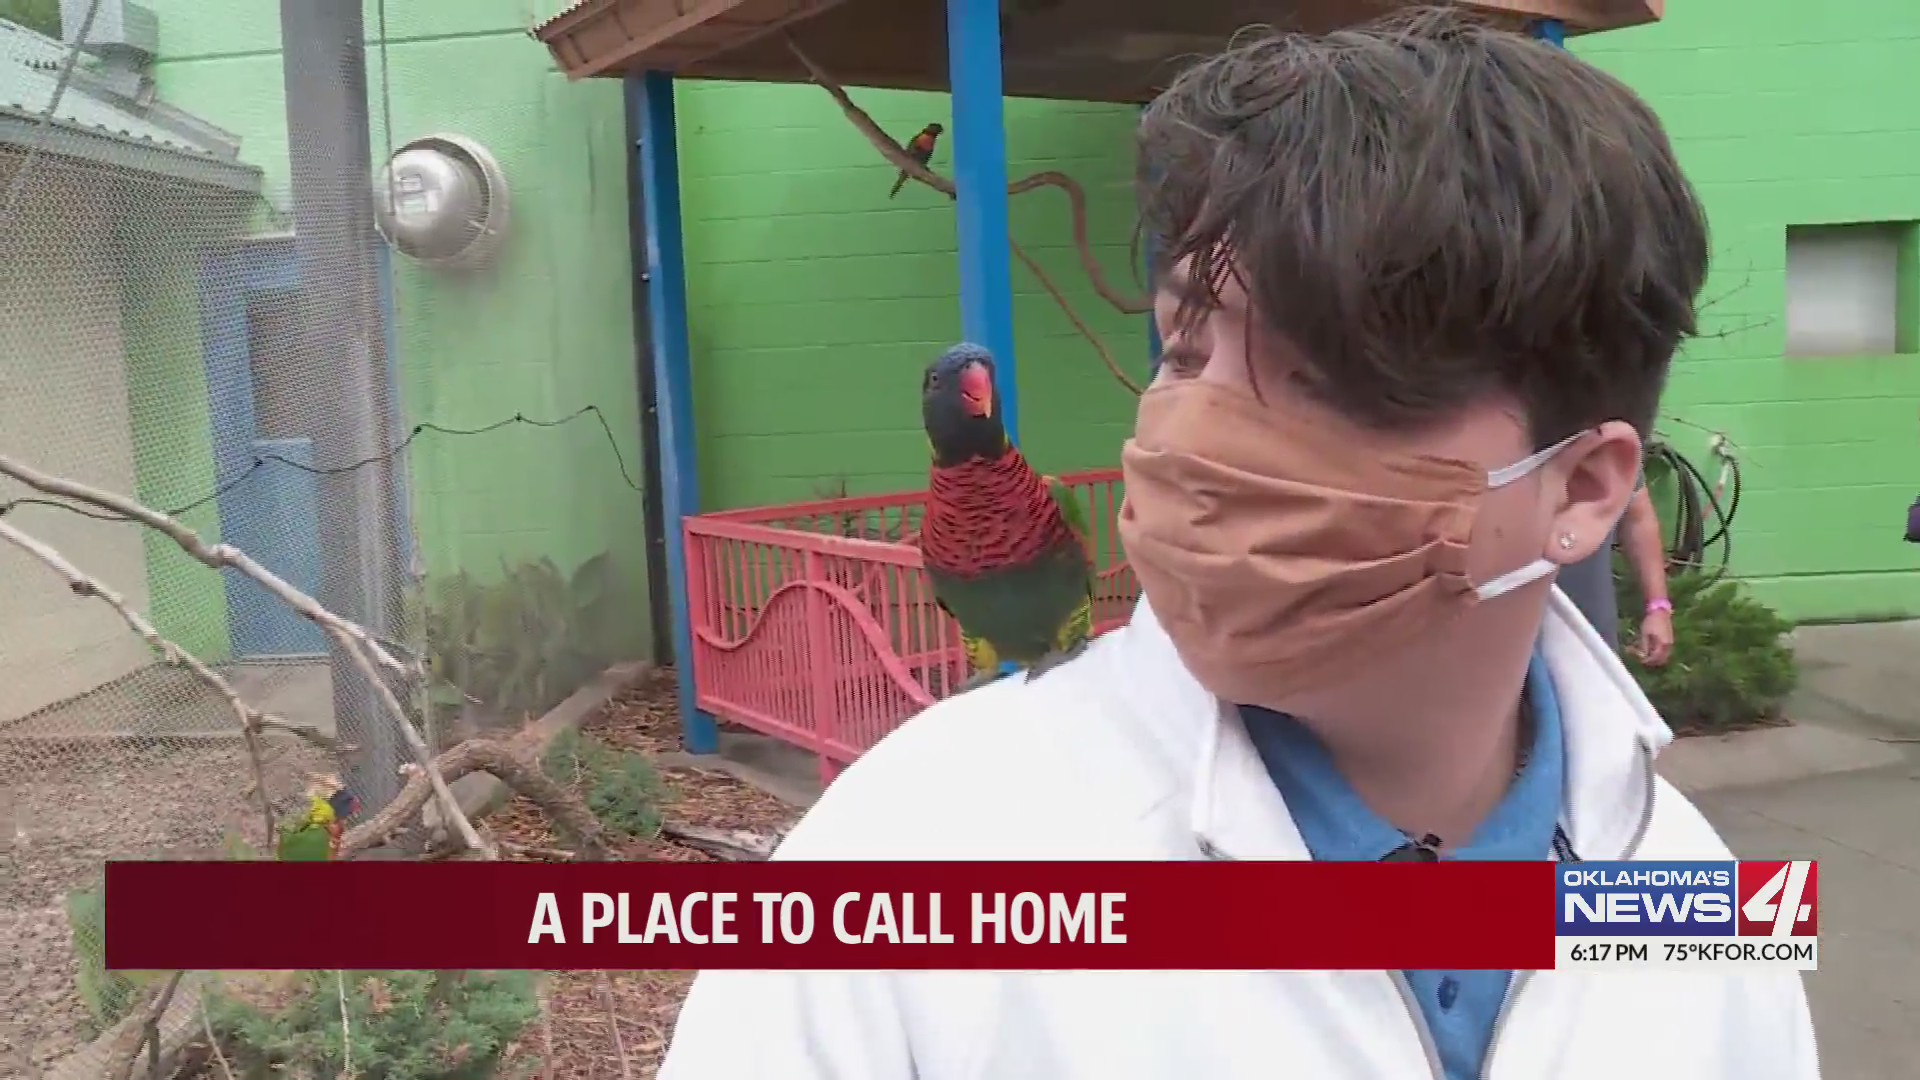 The last of his siblings hoping for adoption, Oklahoma teen dreams of finding a place to call home